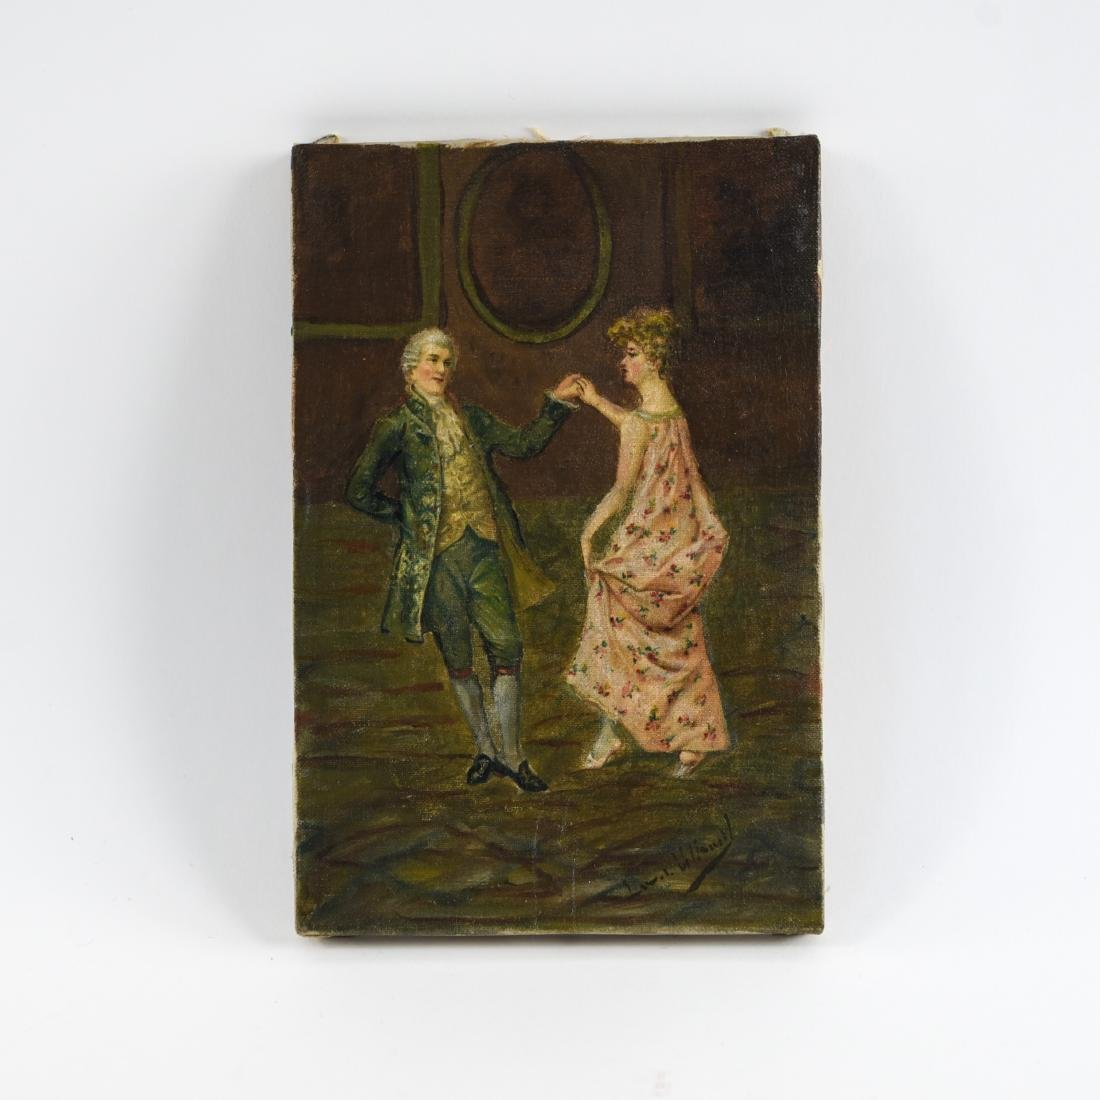 LATE 19TH C. O/C DANCING COUPLE PAINTING